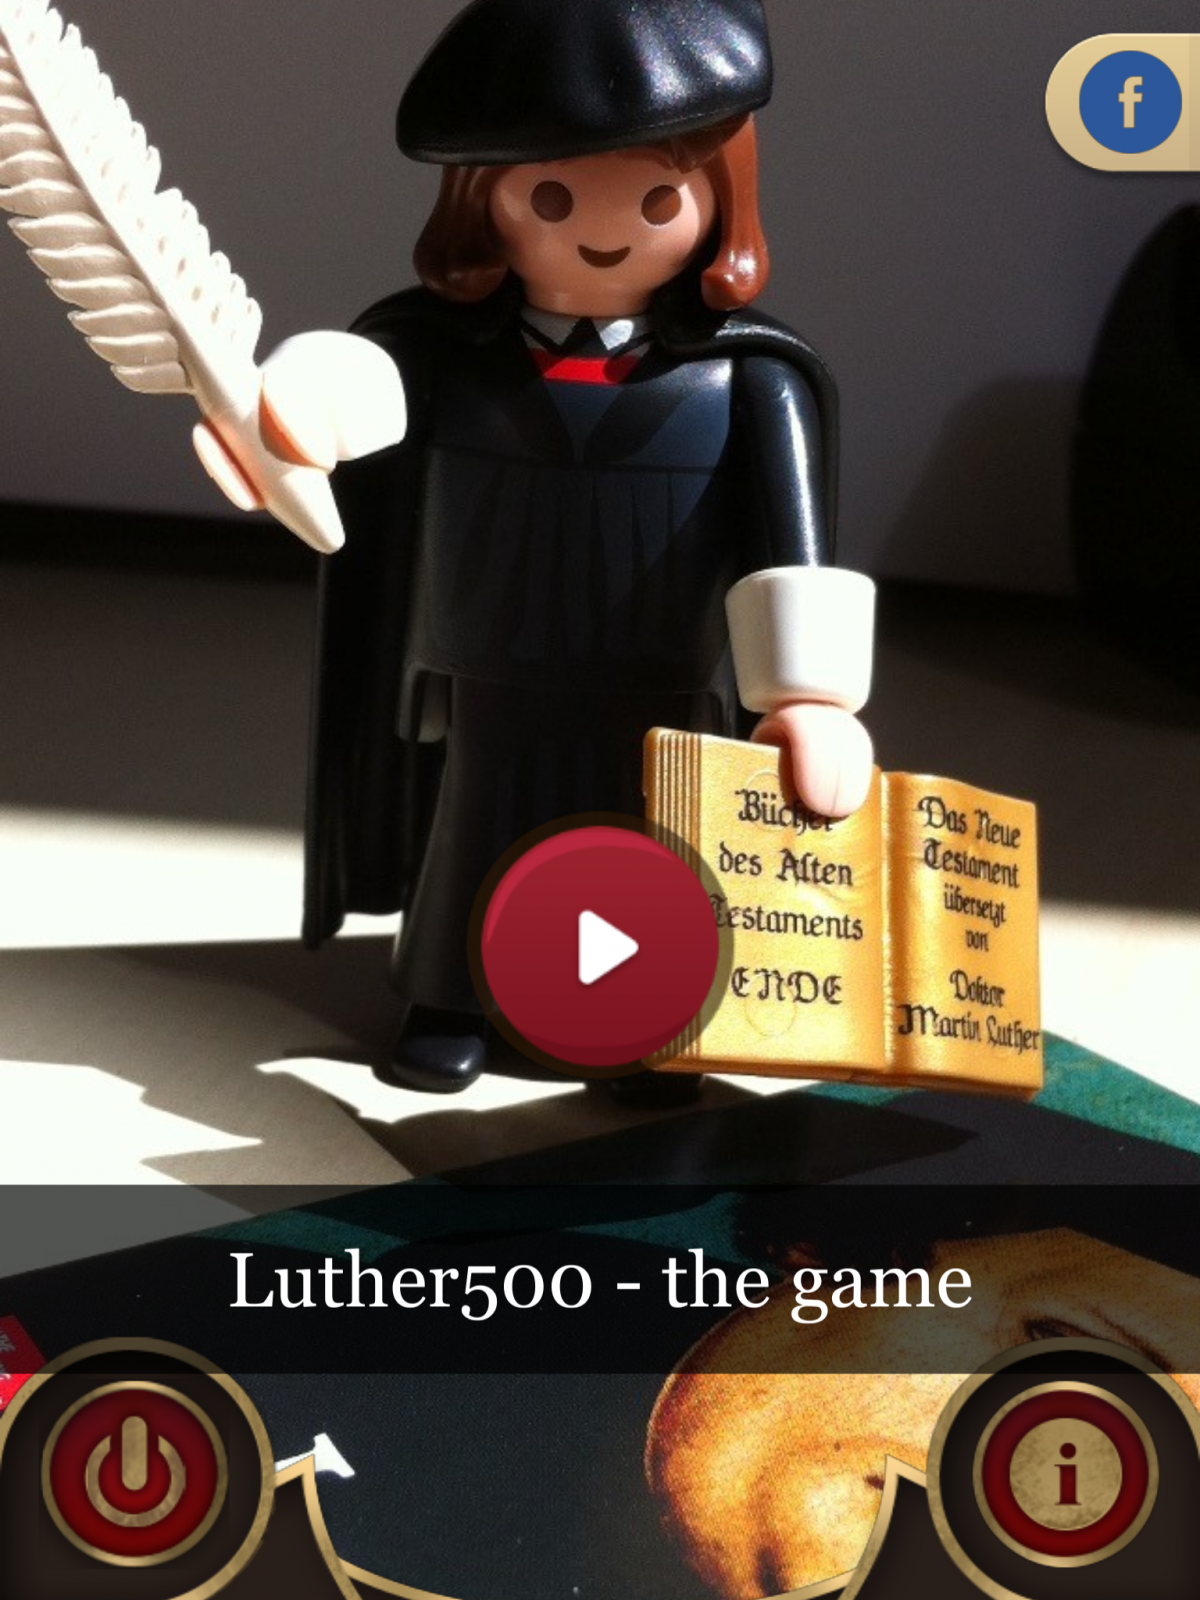 Welkom bij Luther500 – the game